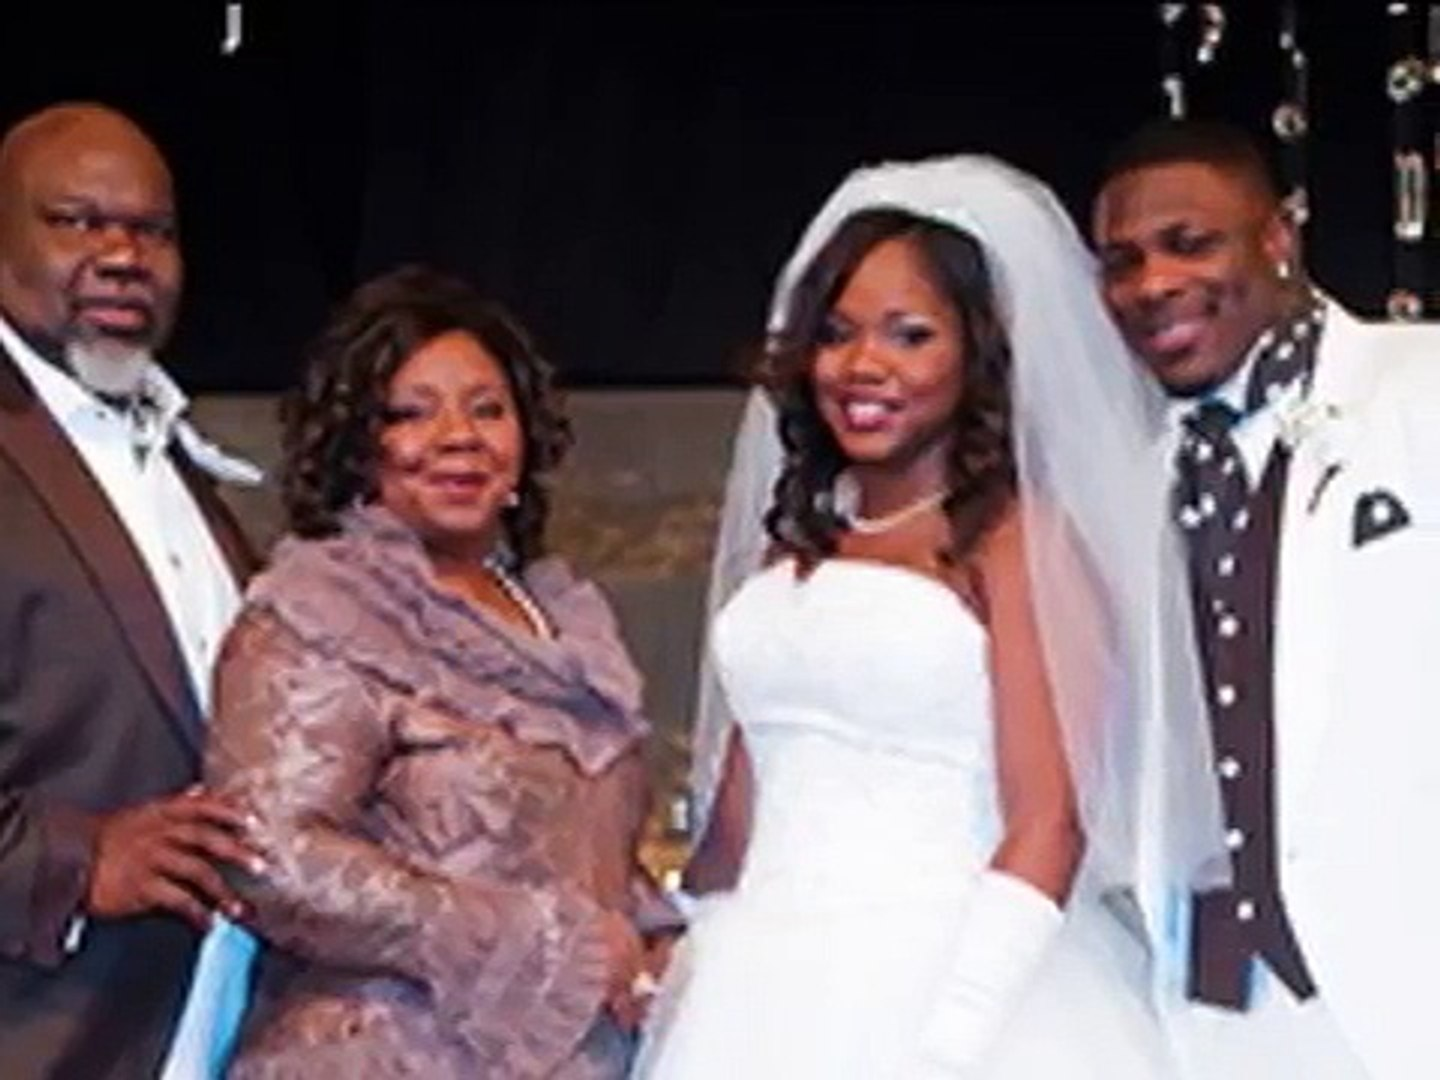 Td Jakes Daughters Wedding.Bishop T D Jakes Daughter Sarah S Fairy Tale Wedding